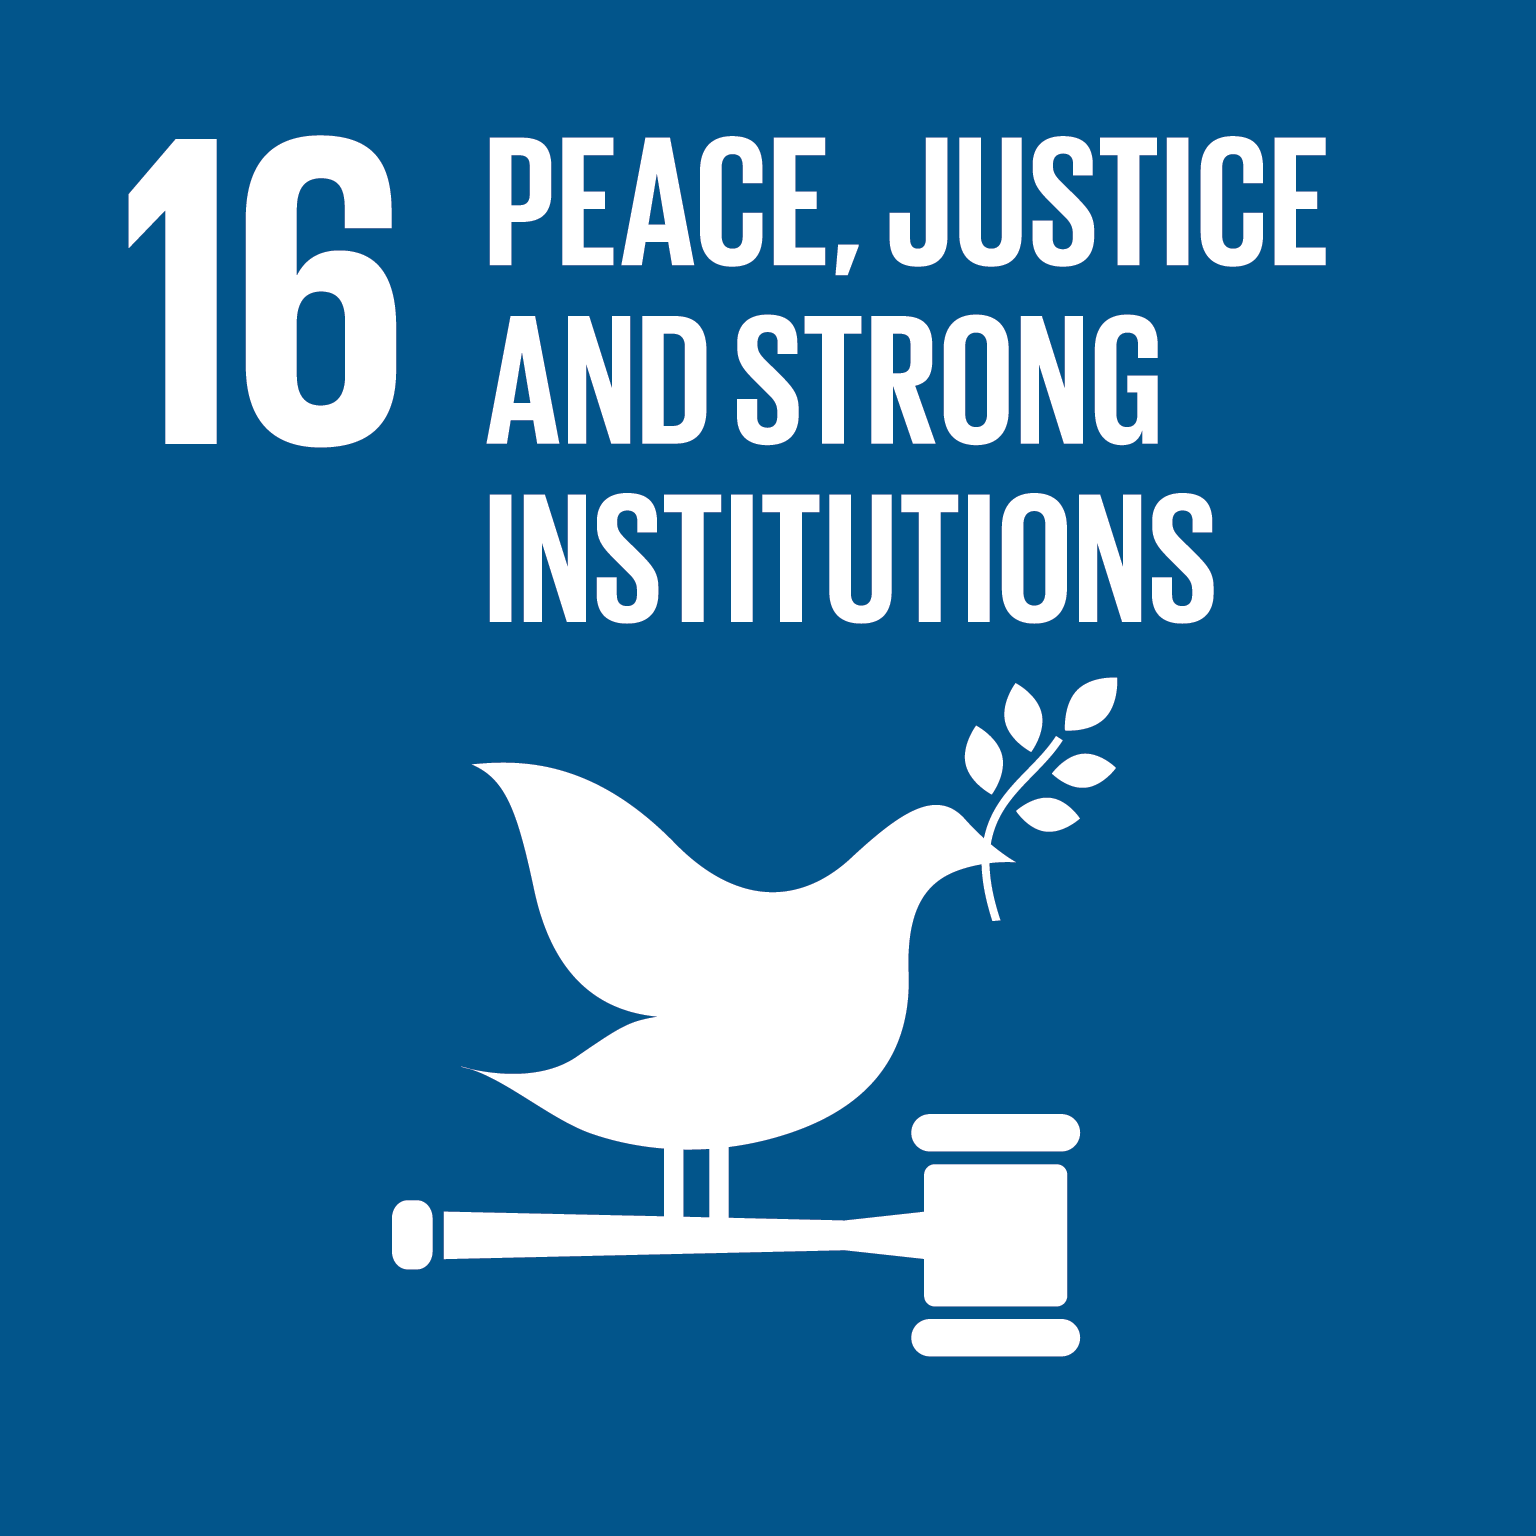 16 - Peace, justice and strong institutions